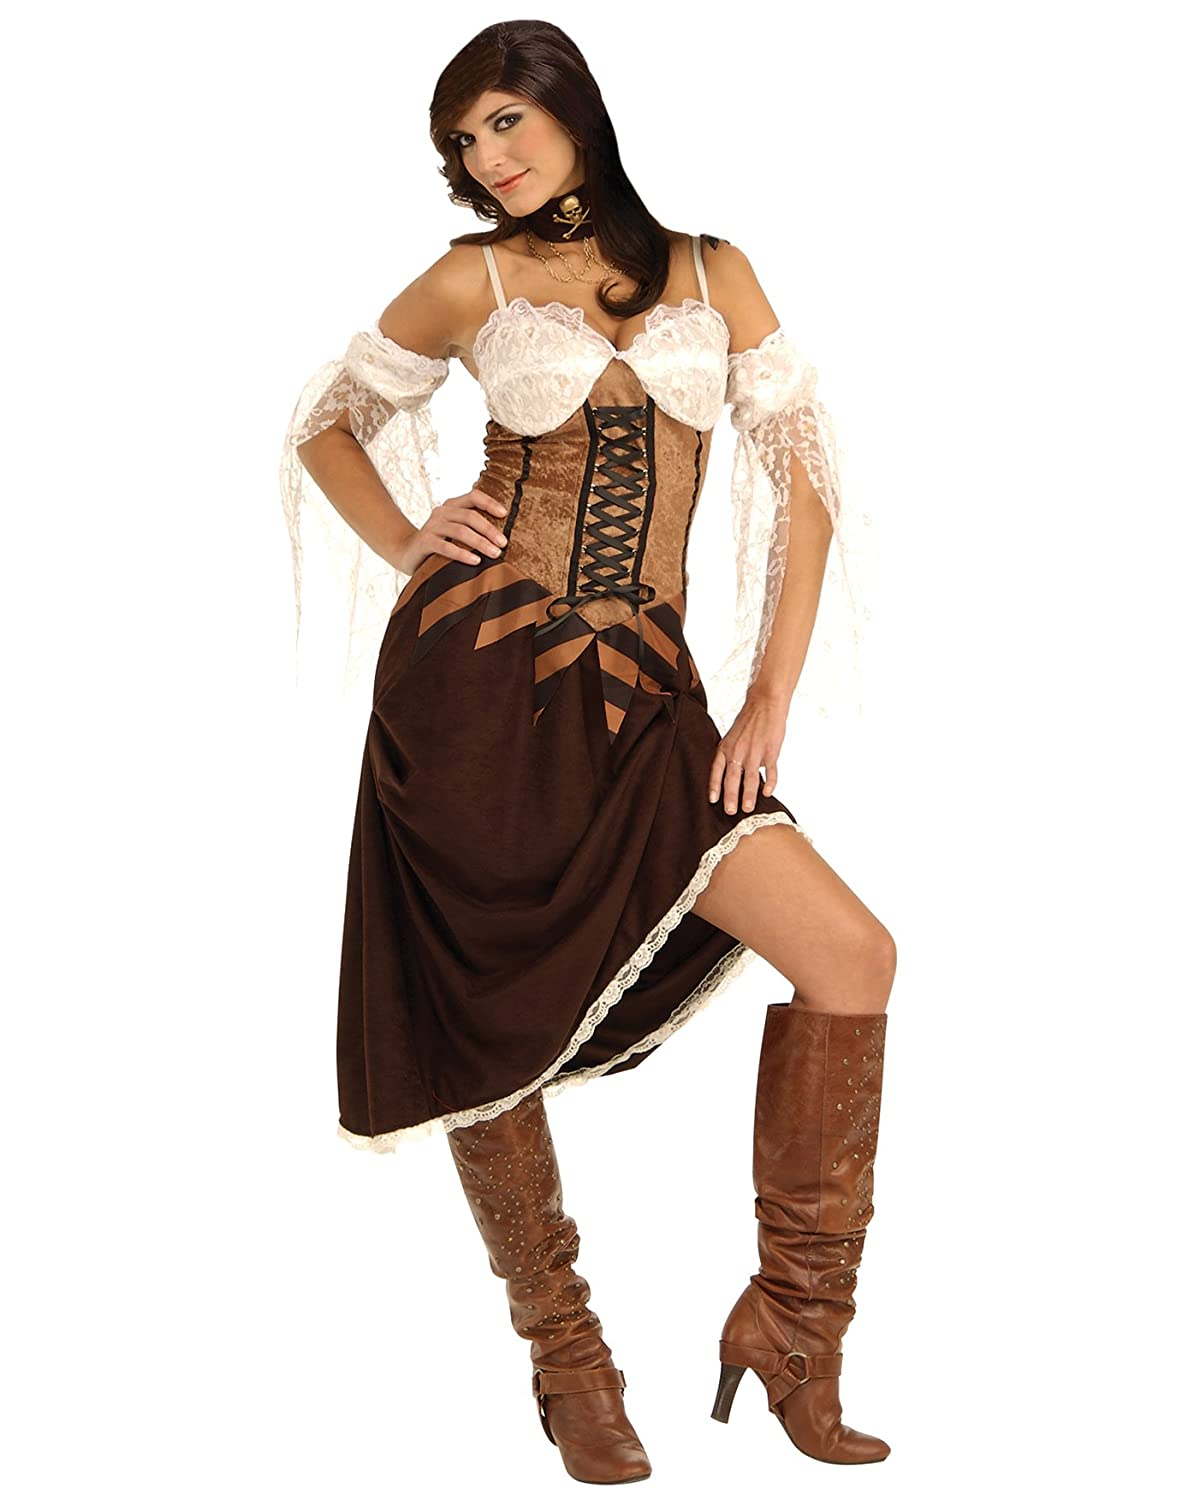 Amazon.com: Sexy Pirate Costume Corset Dress Buccaneer Wench ...